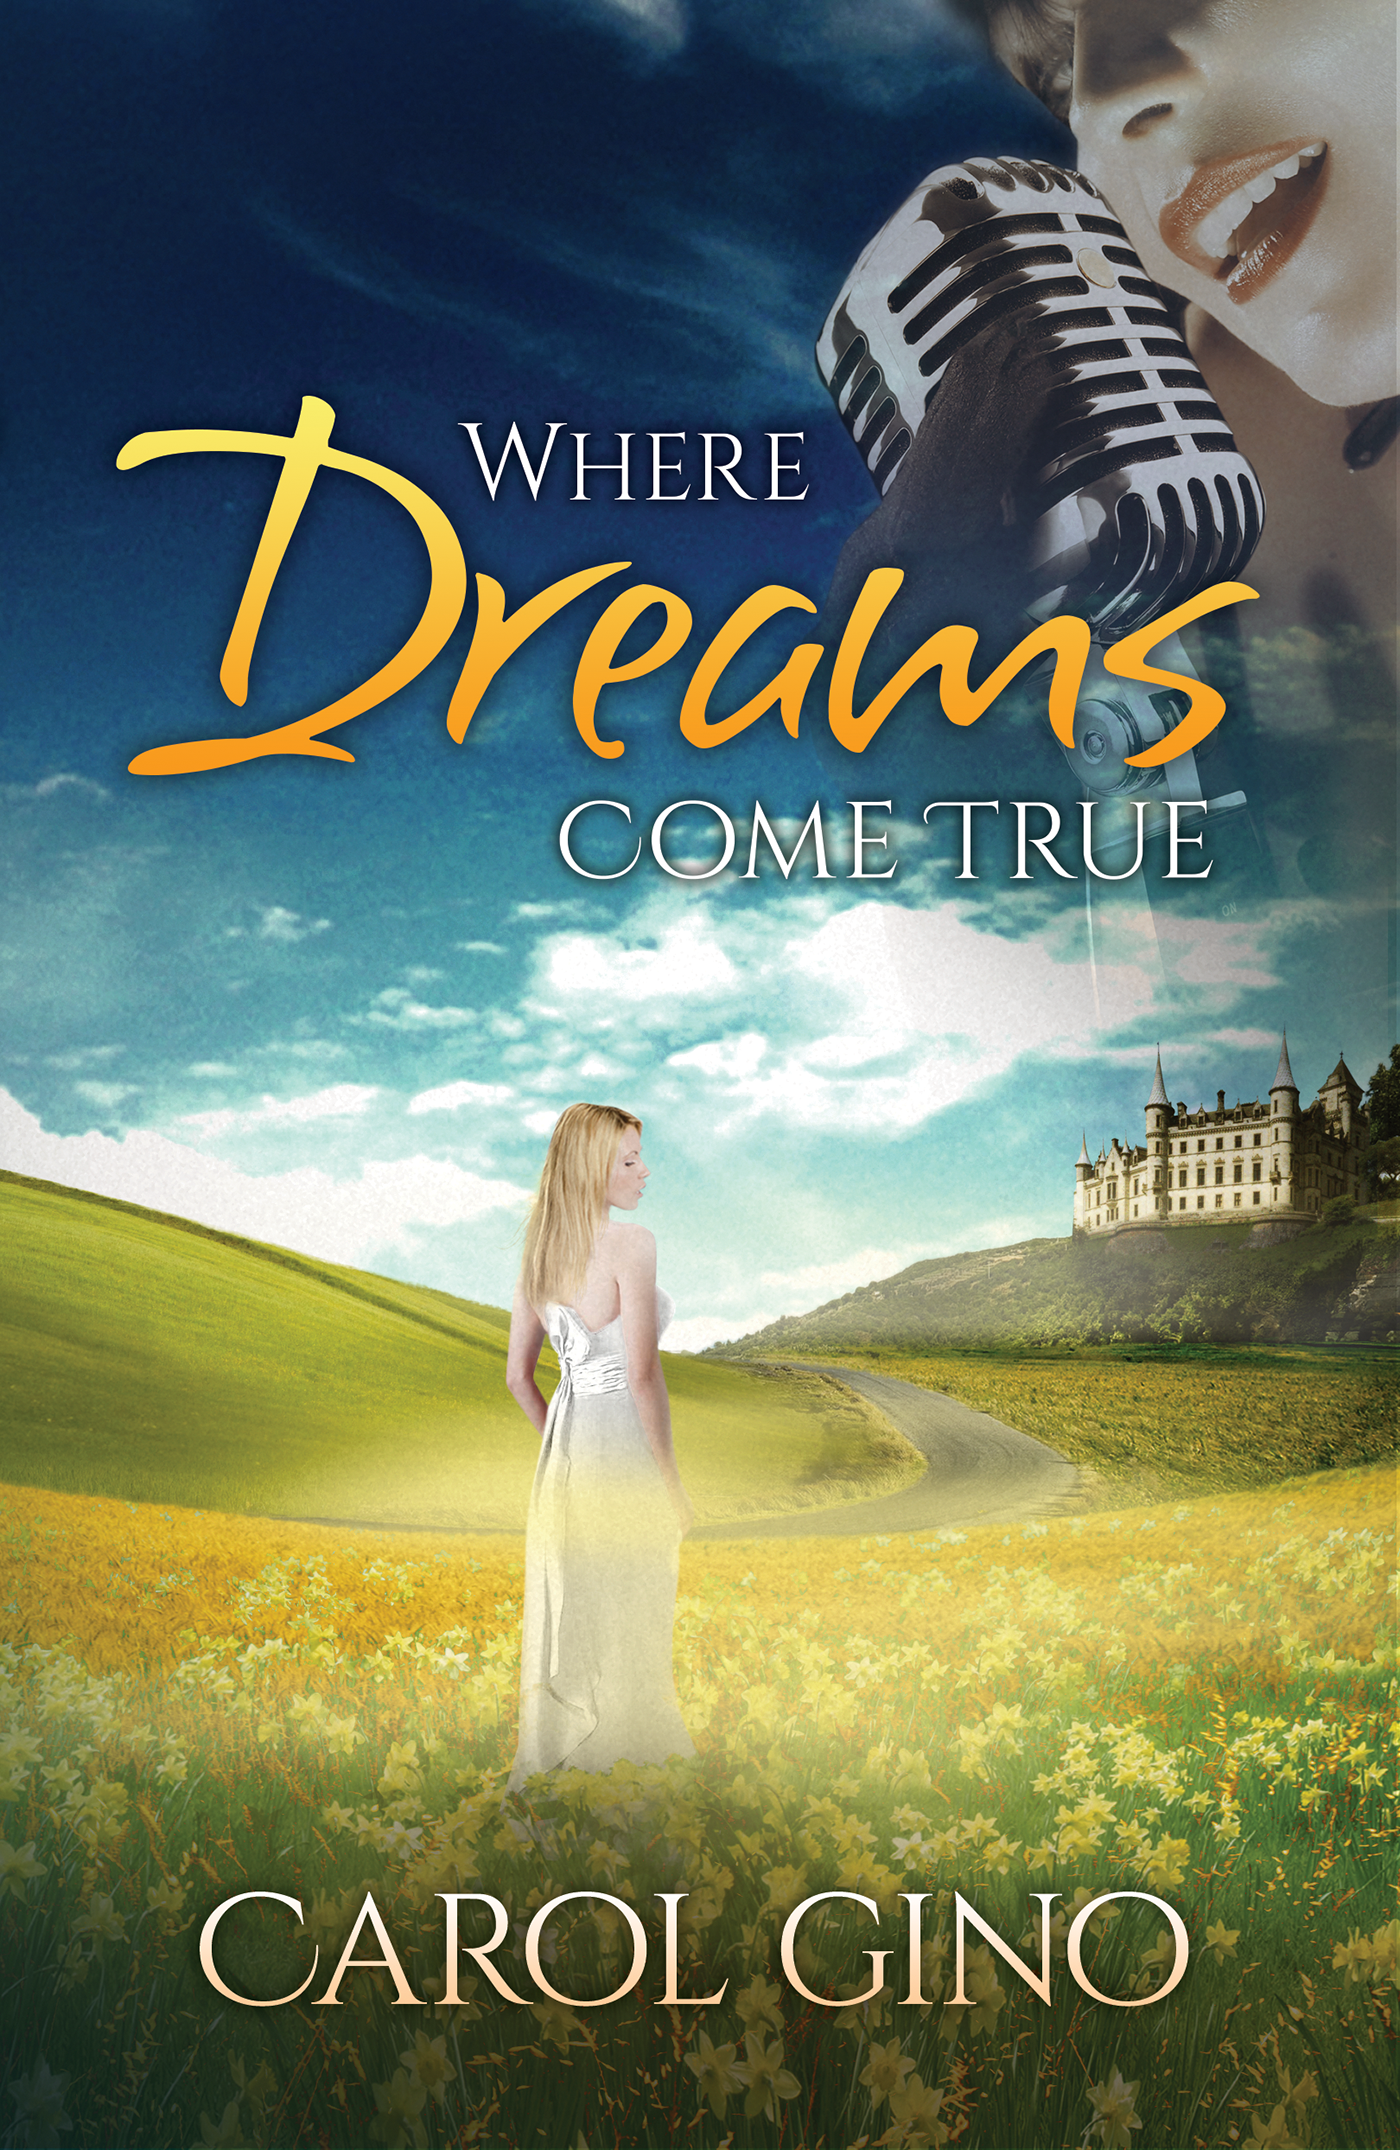 Where Dreams Come True by Carol Gino